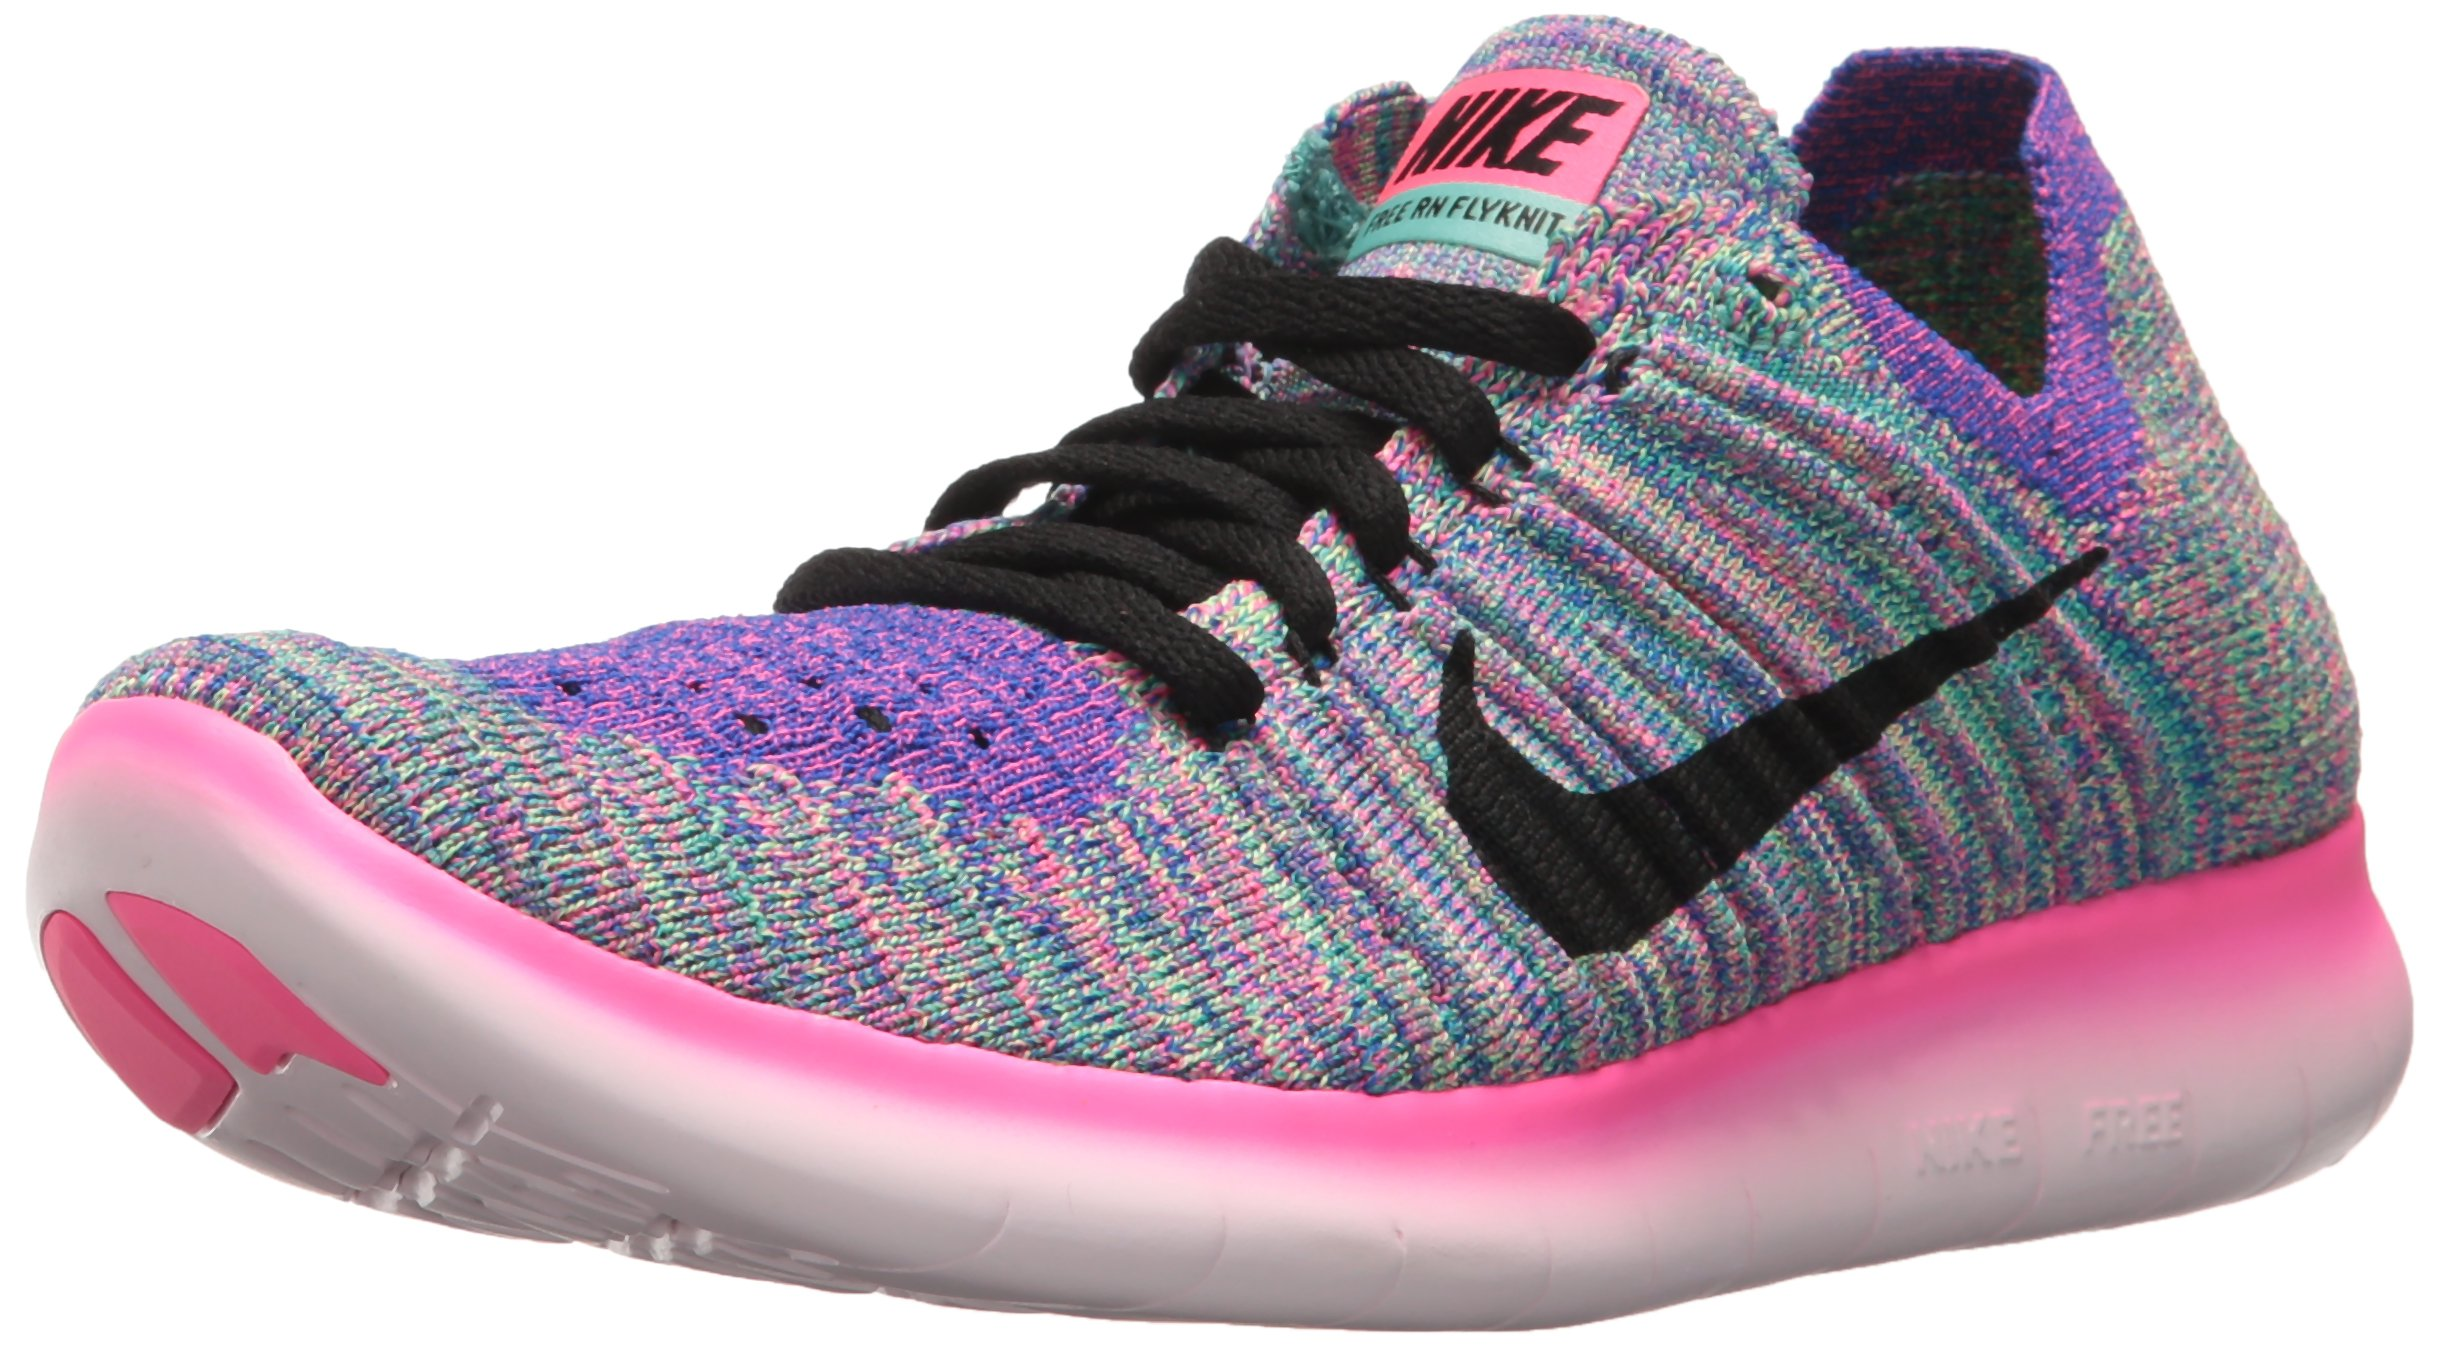 Nike Women's Free Running Motion Flyknit Shoes, Pink Blast/Black/Racer Blue/Clear Jade - 8 B(M) US by NIKE